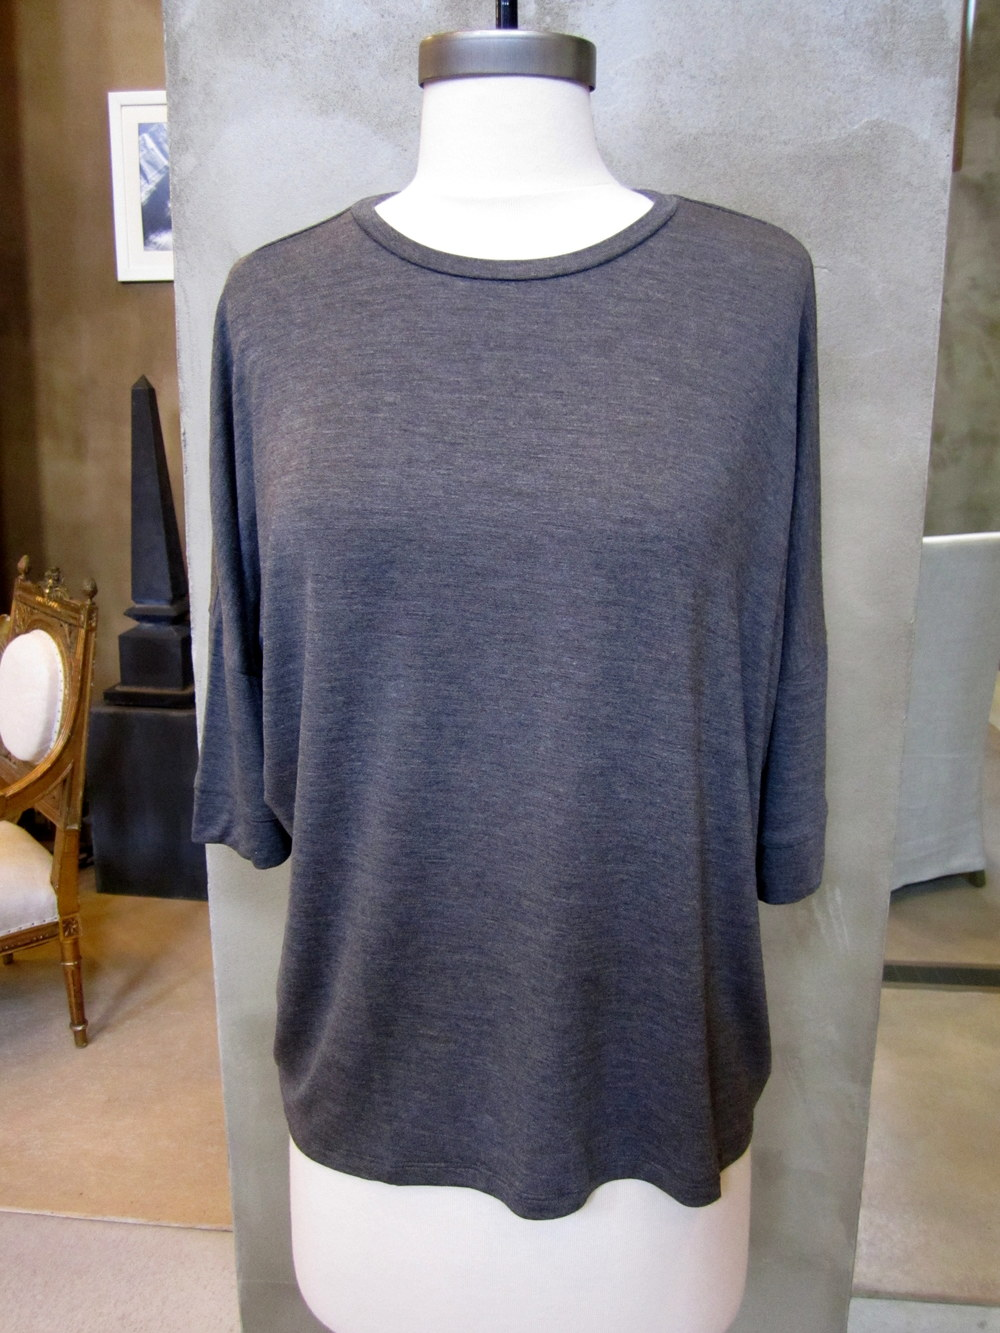 Wear with Organic by John Patrick Spring 2014 Heathered Grey Tee.  $85.  Available in Small and Medium.